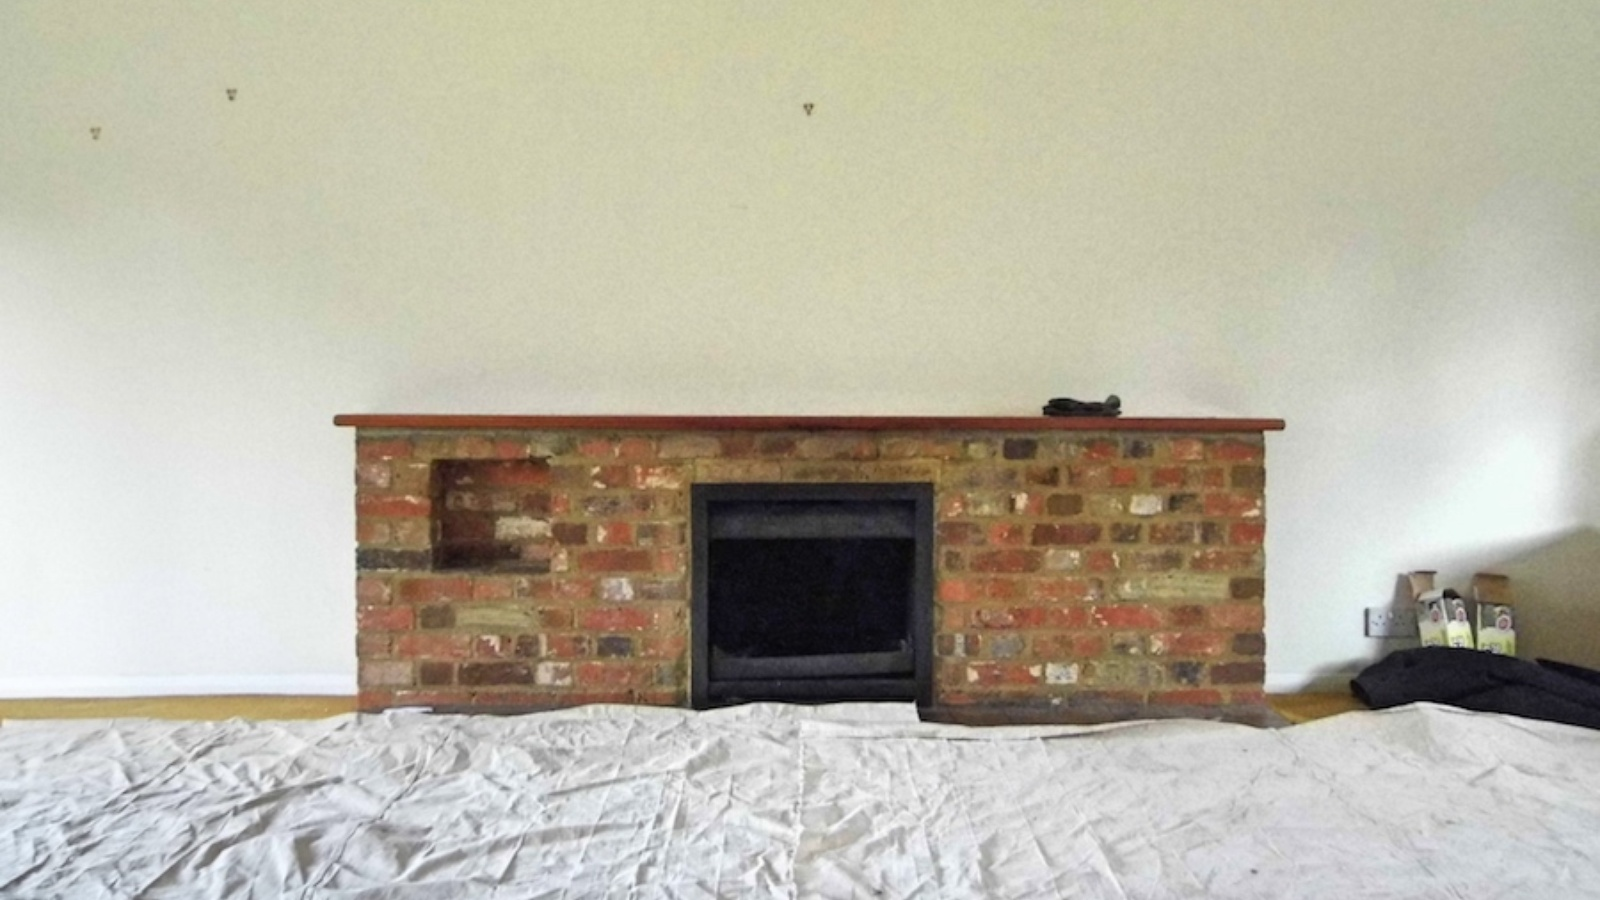 The original fireplace looked lost in the room and was dated.